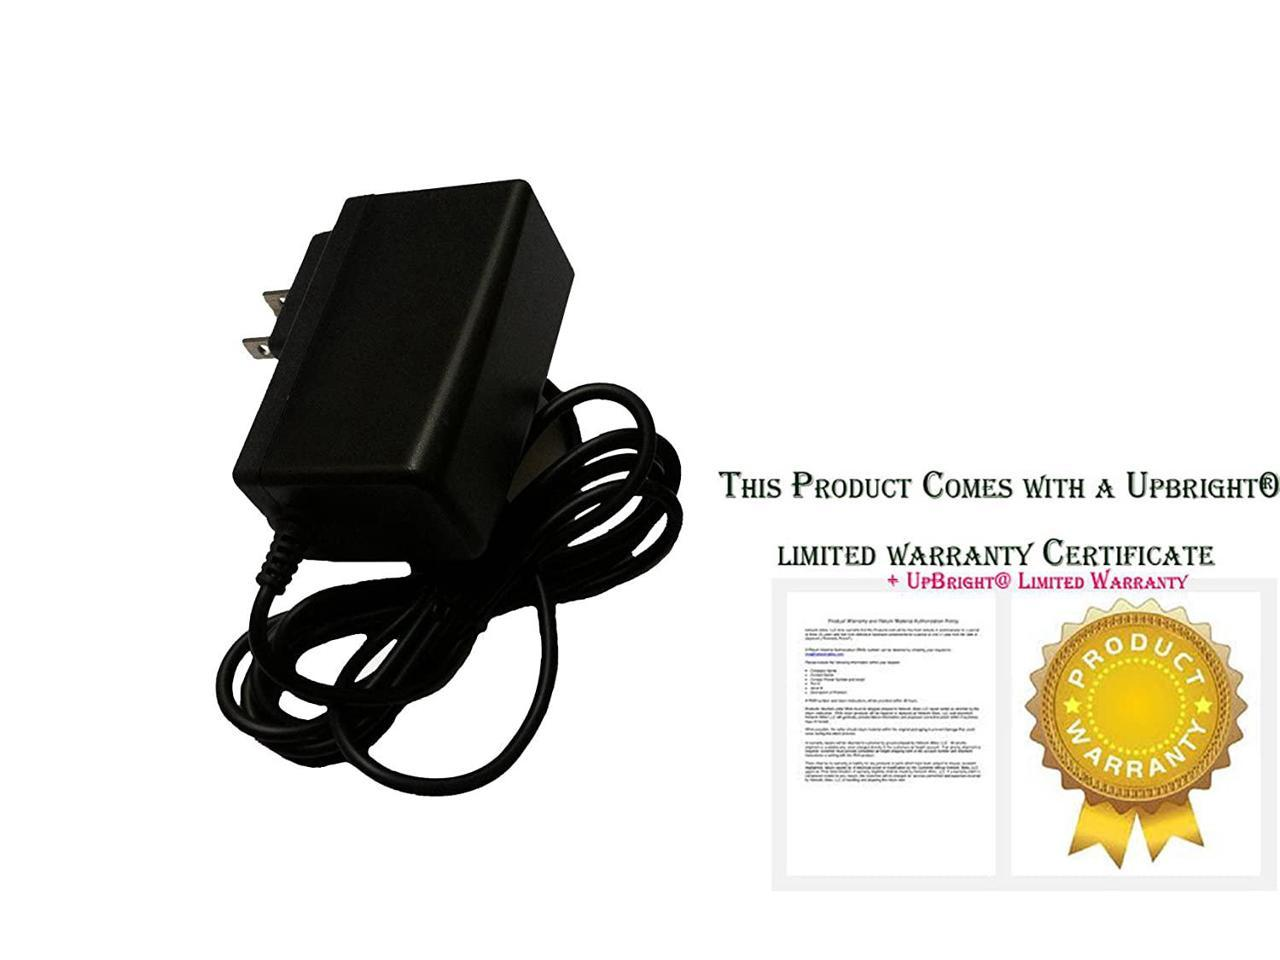 AC//DC Adapter for Panasonic Palmcorder PV-L352 D PV-L353 D PV-L354 D PV-L352D PV-L353D PV-L354D PVL352 D PVL353 D PVL354D Camcorder Camera PV-L858 PV-L858D PVL858 PalmSight Power Supply